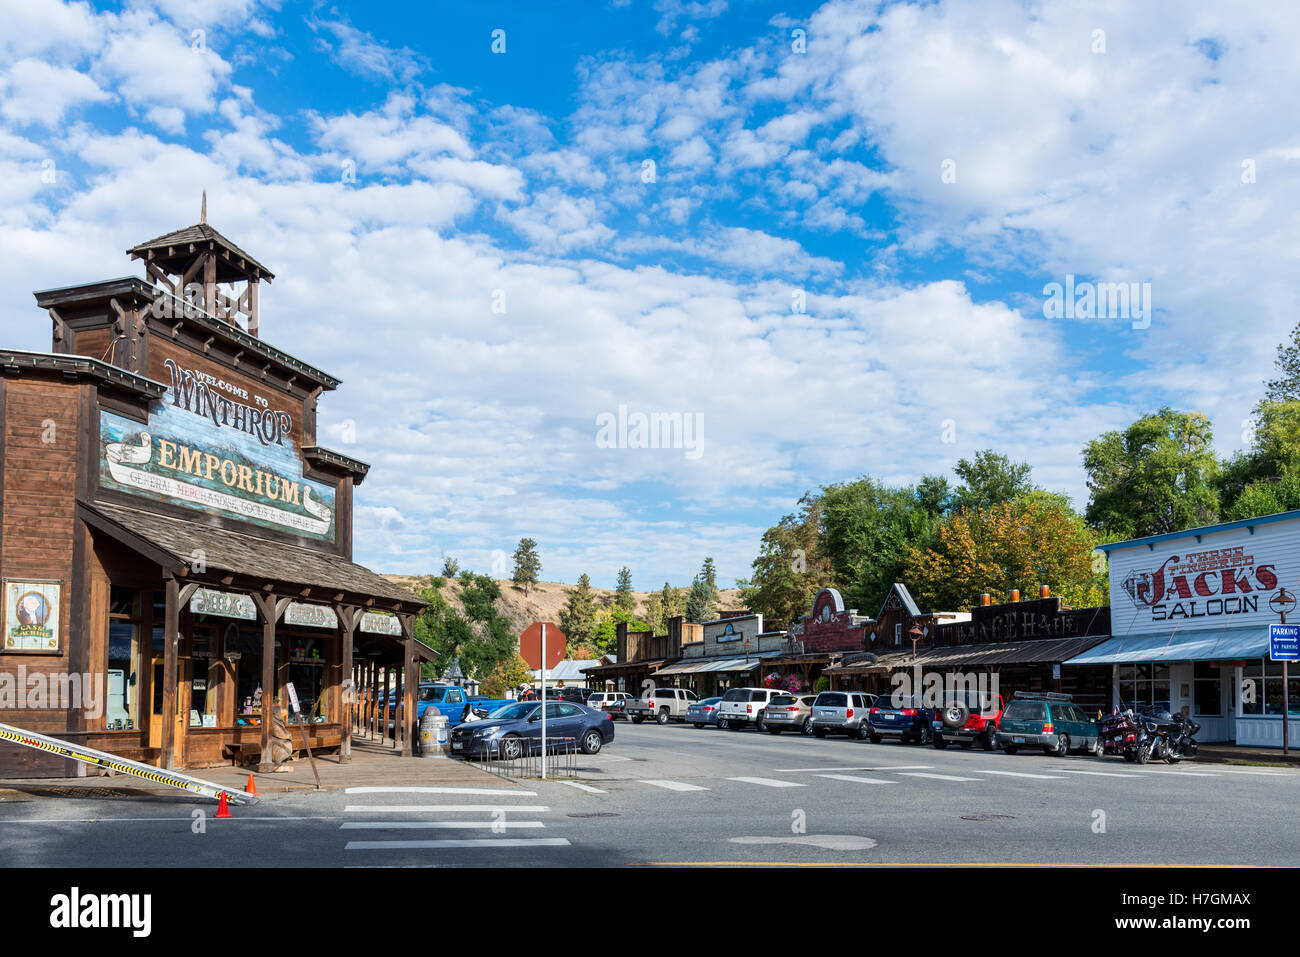 Street view of a traditional western town Winthrop, Washington, USA. - Stock Image